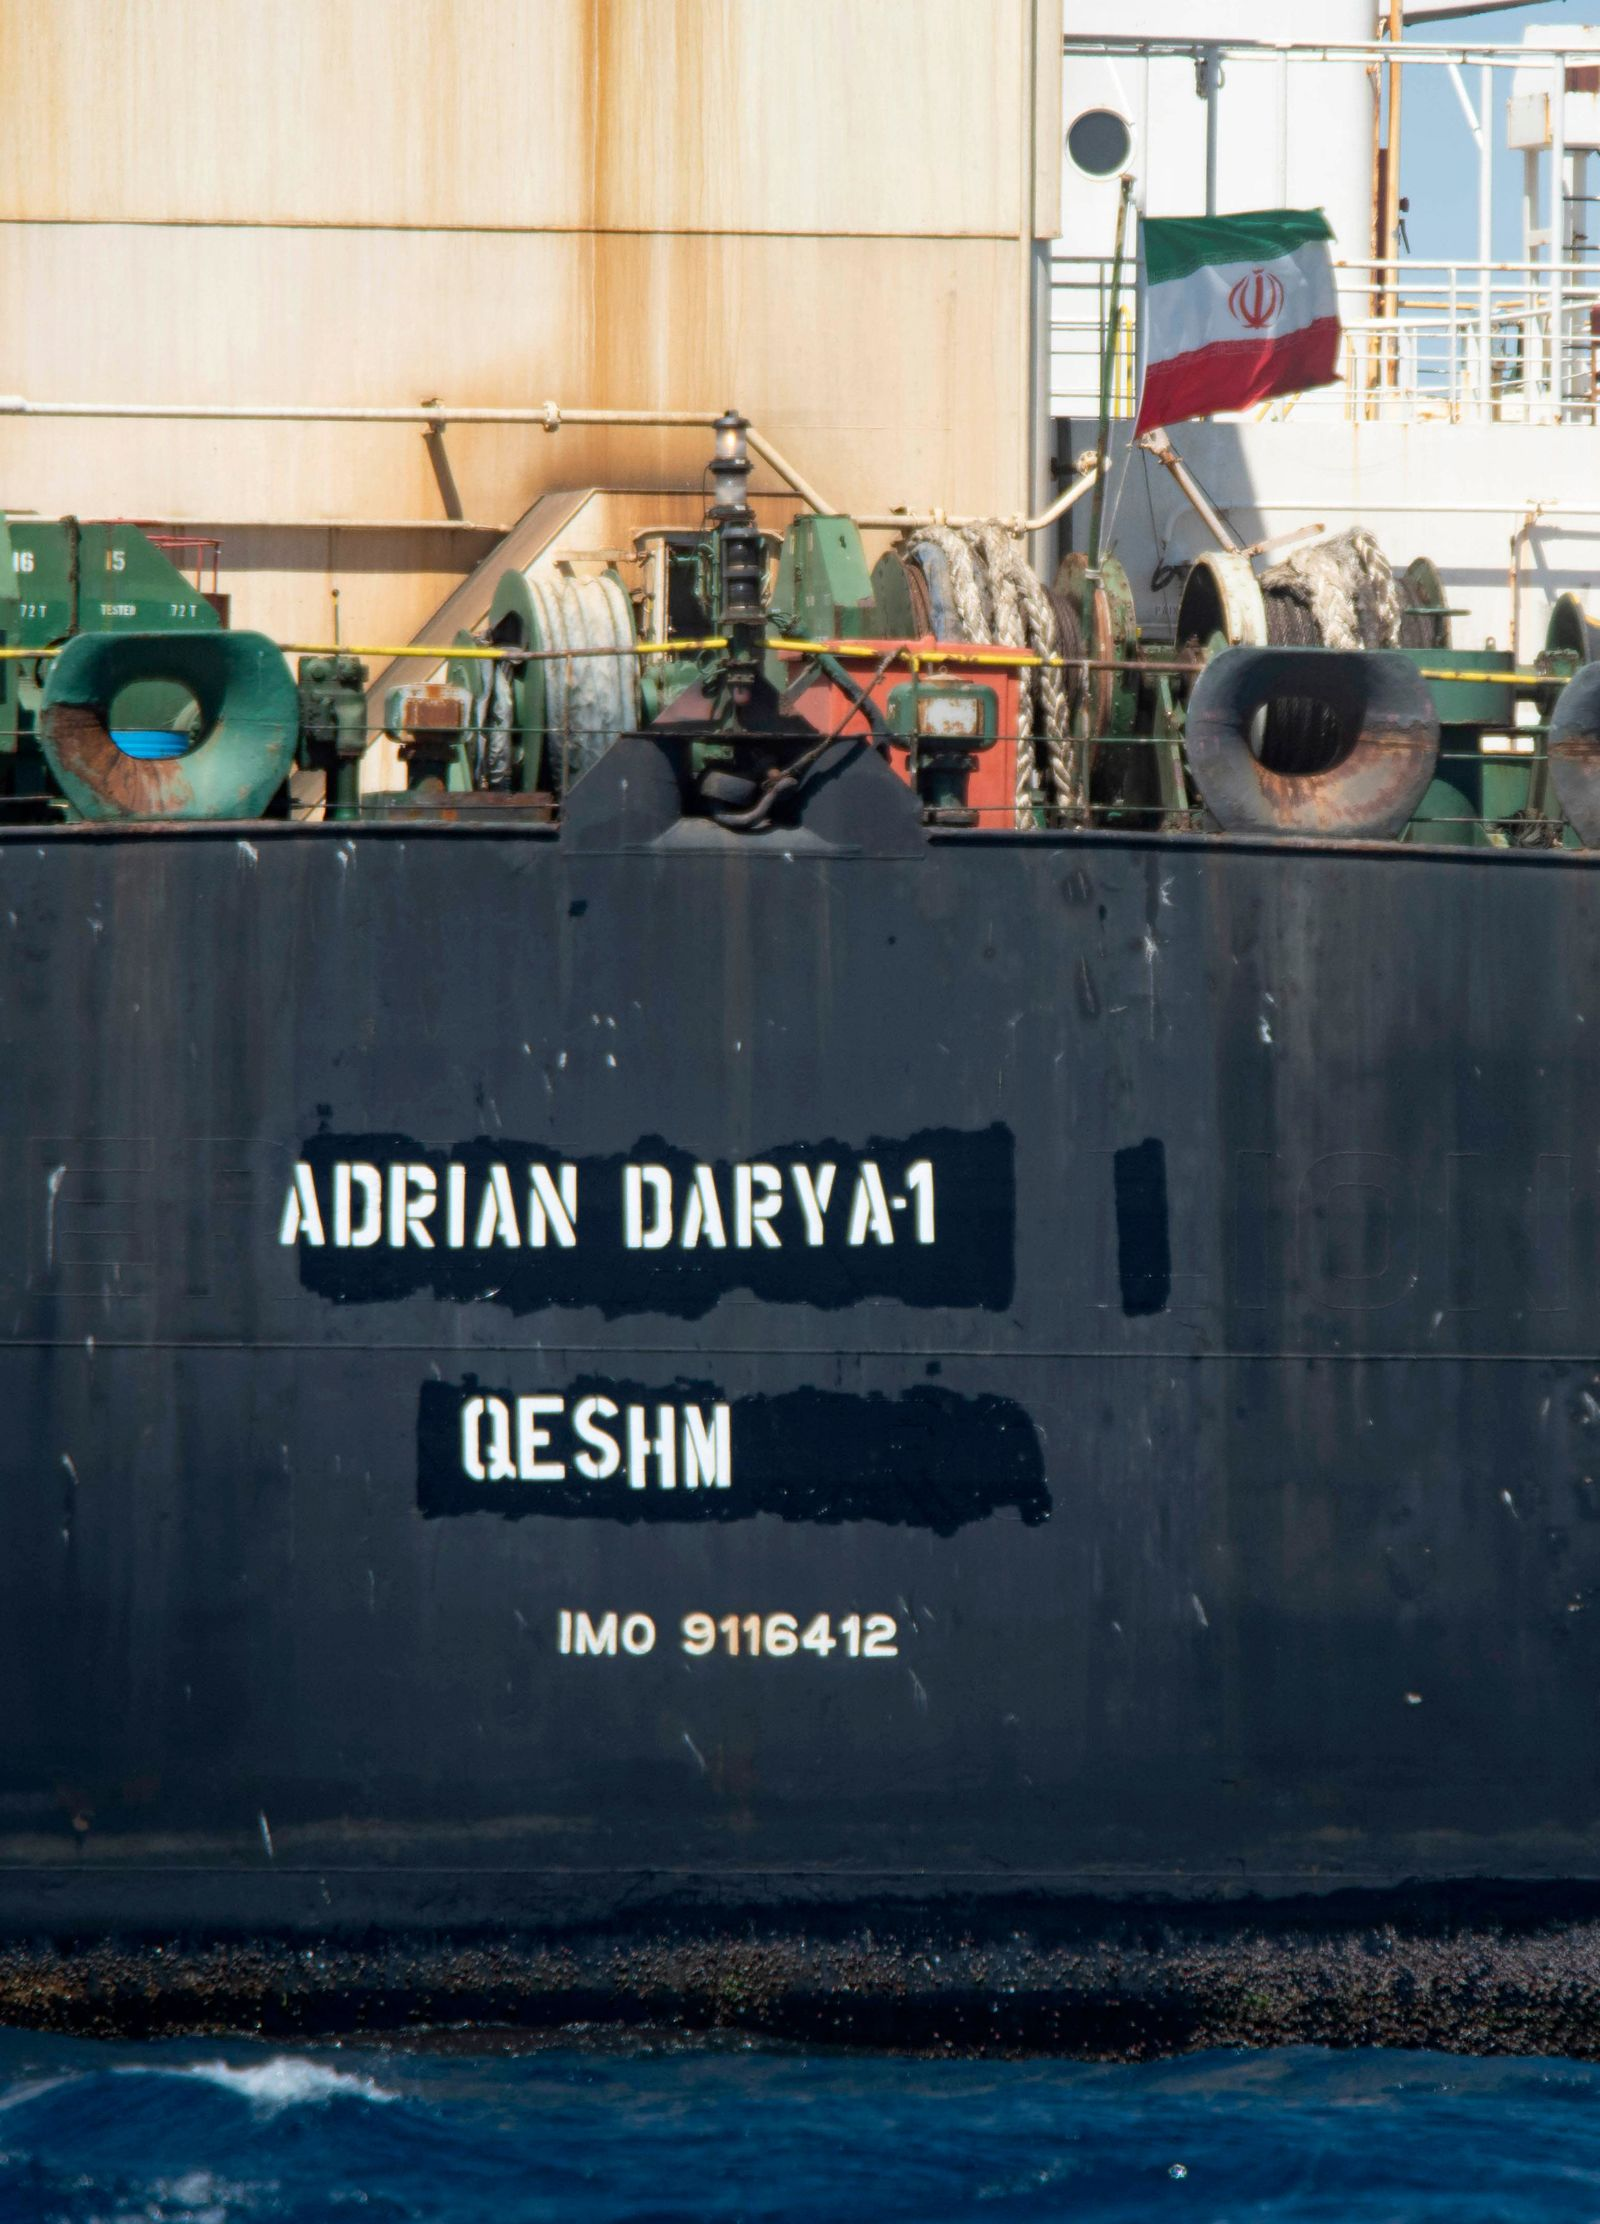 Renamed Adrian Aryra 1 super tanker hosting an Iranian flag, sails in the the waters of the British territory of Gibraltar, Sunday, Aug. 18, 2019. Authorities in Gibraltar on Sunday rejected the United States' latest request not to release a seized Iranian supertanker, clearing the way for the vessel to set sail after being detained last month for allegedly attempting to breach European Union sanctions on Syria. (AP Photo/Marcos Moreno)